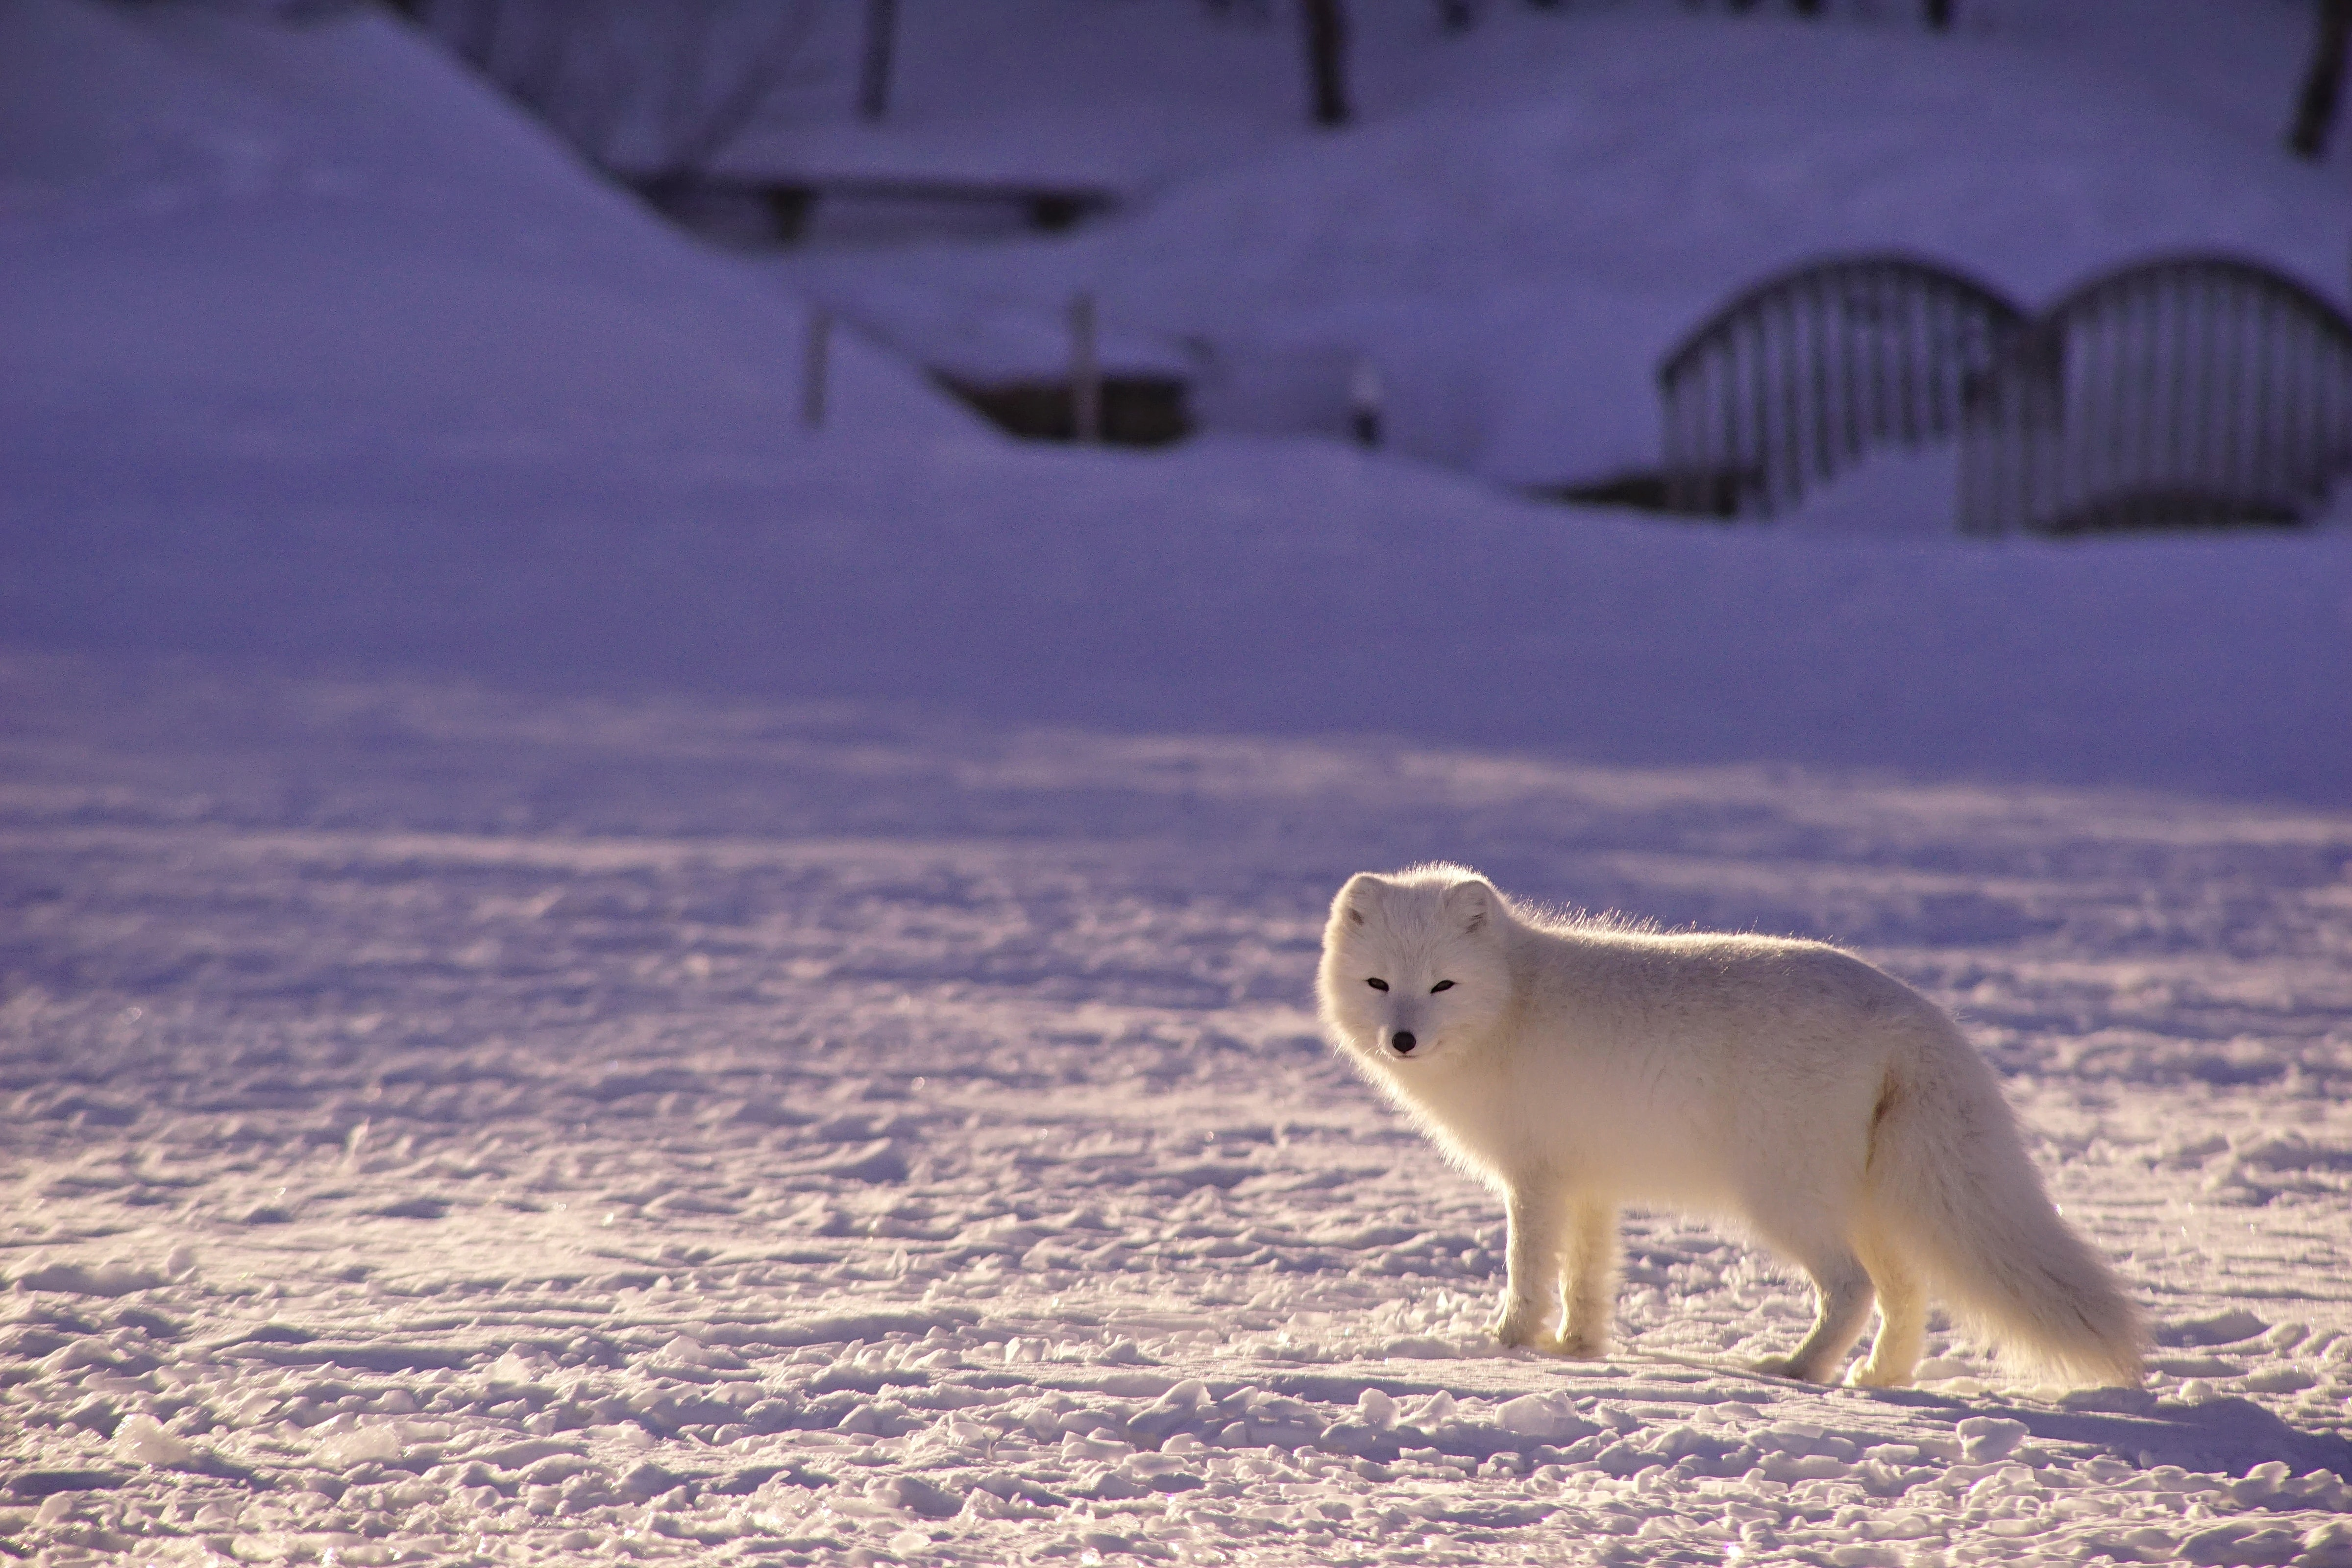 White arctic fox standing on a field of snow in front of bridge